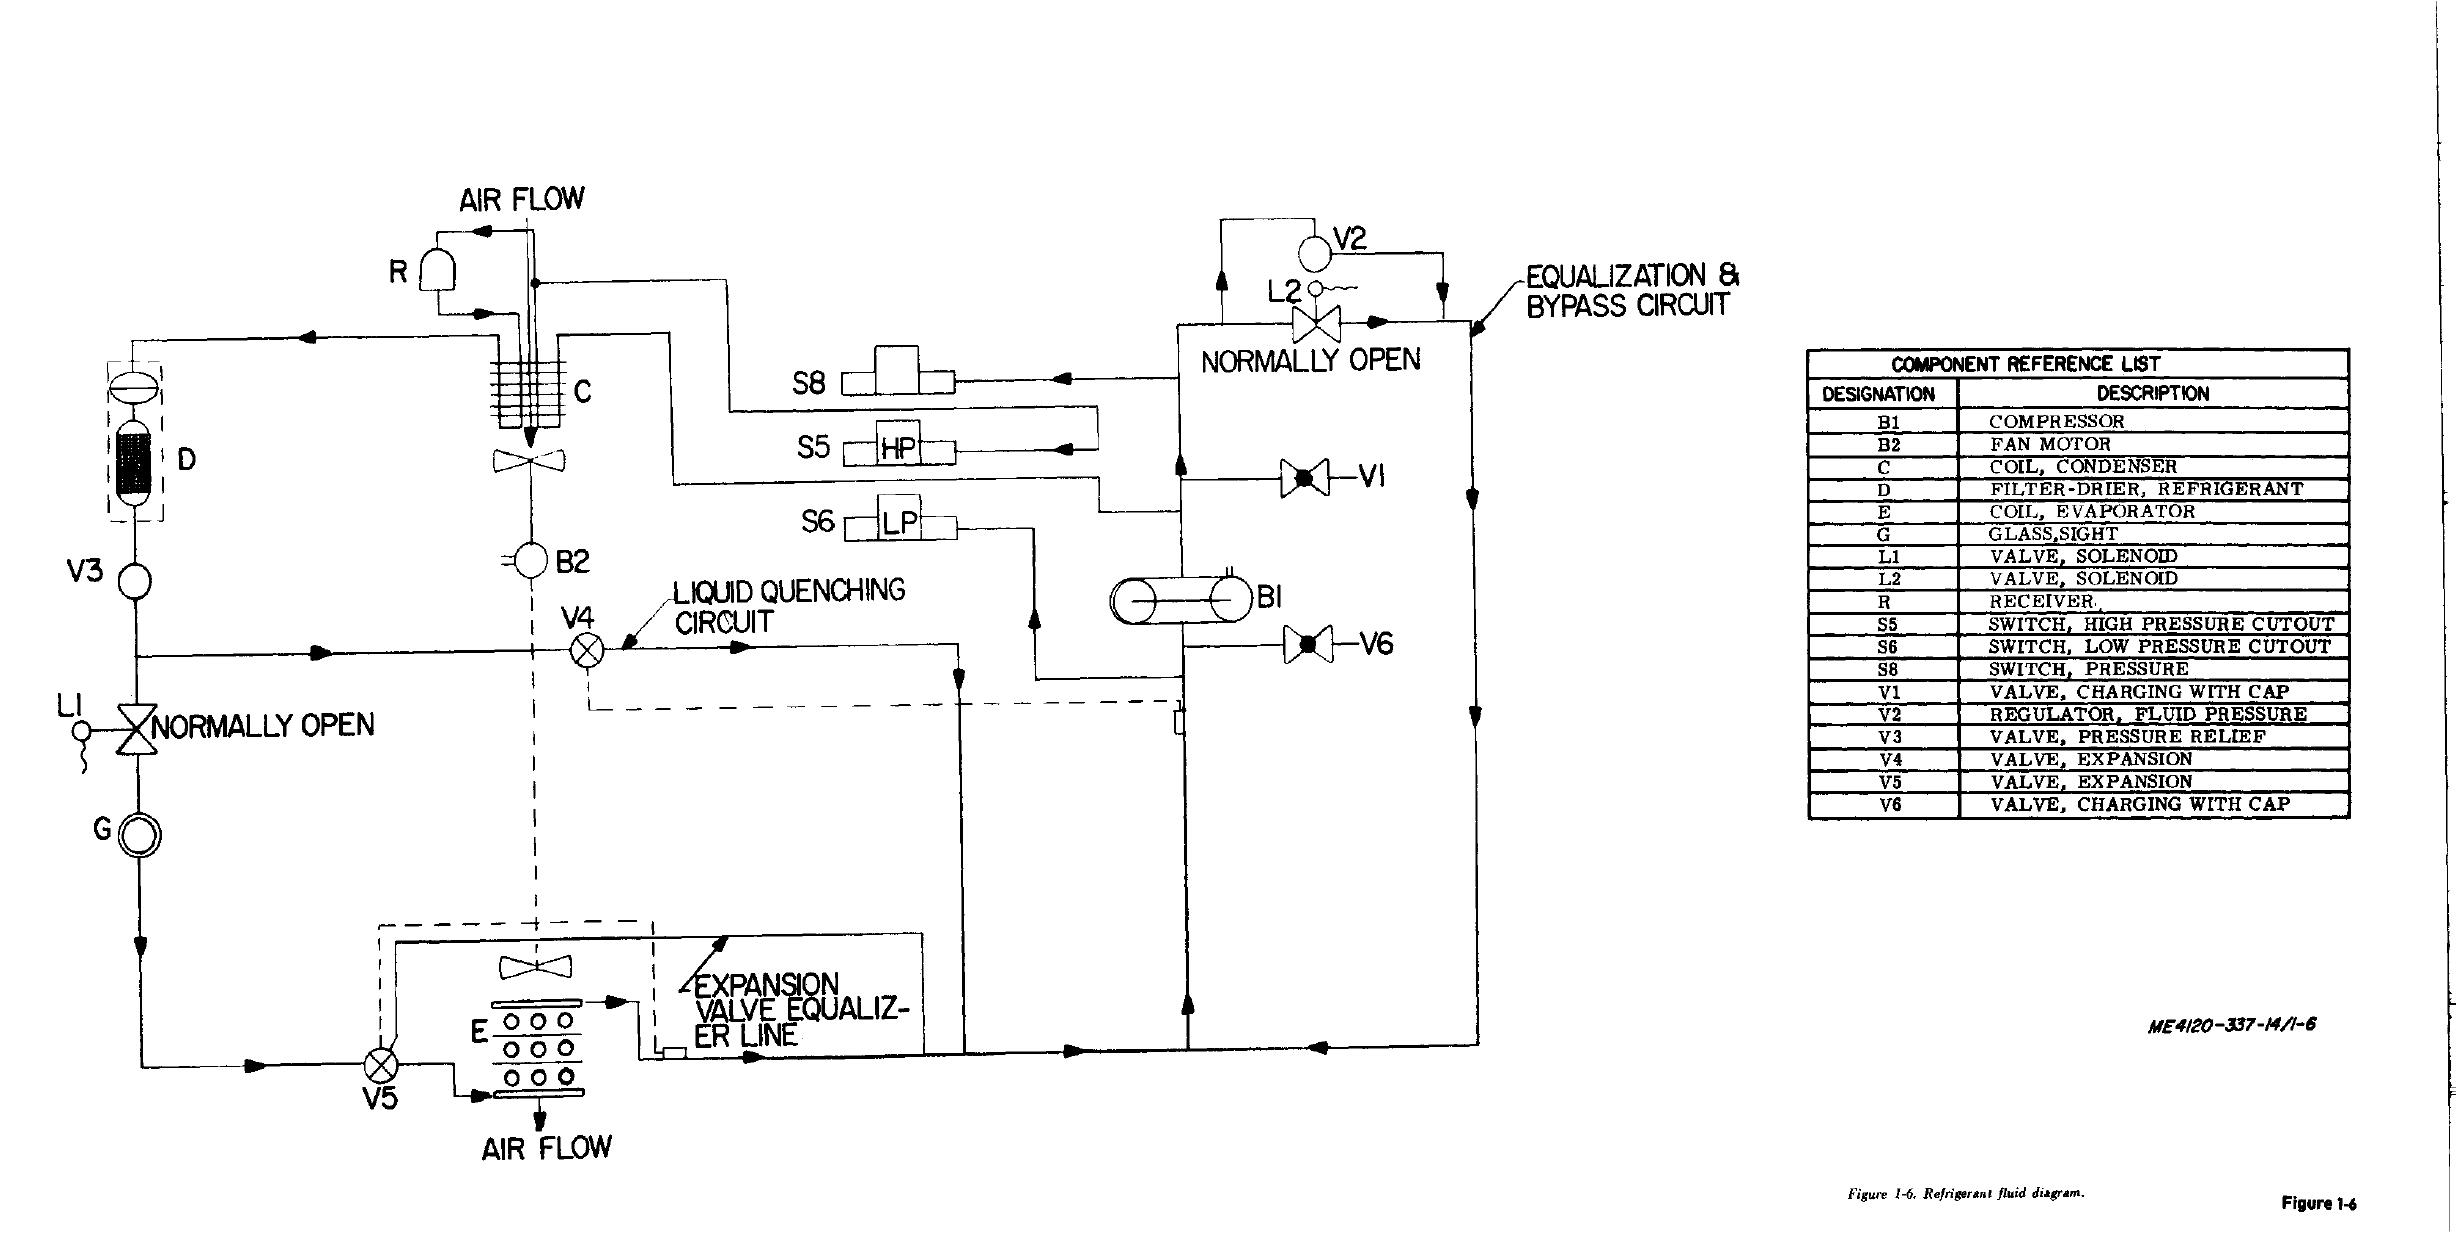 Ac Unit Wiring Ladder Diagram | Wiring Liry Ac Unit Wiring Schematic on